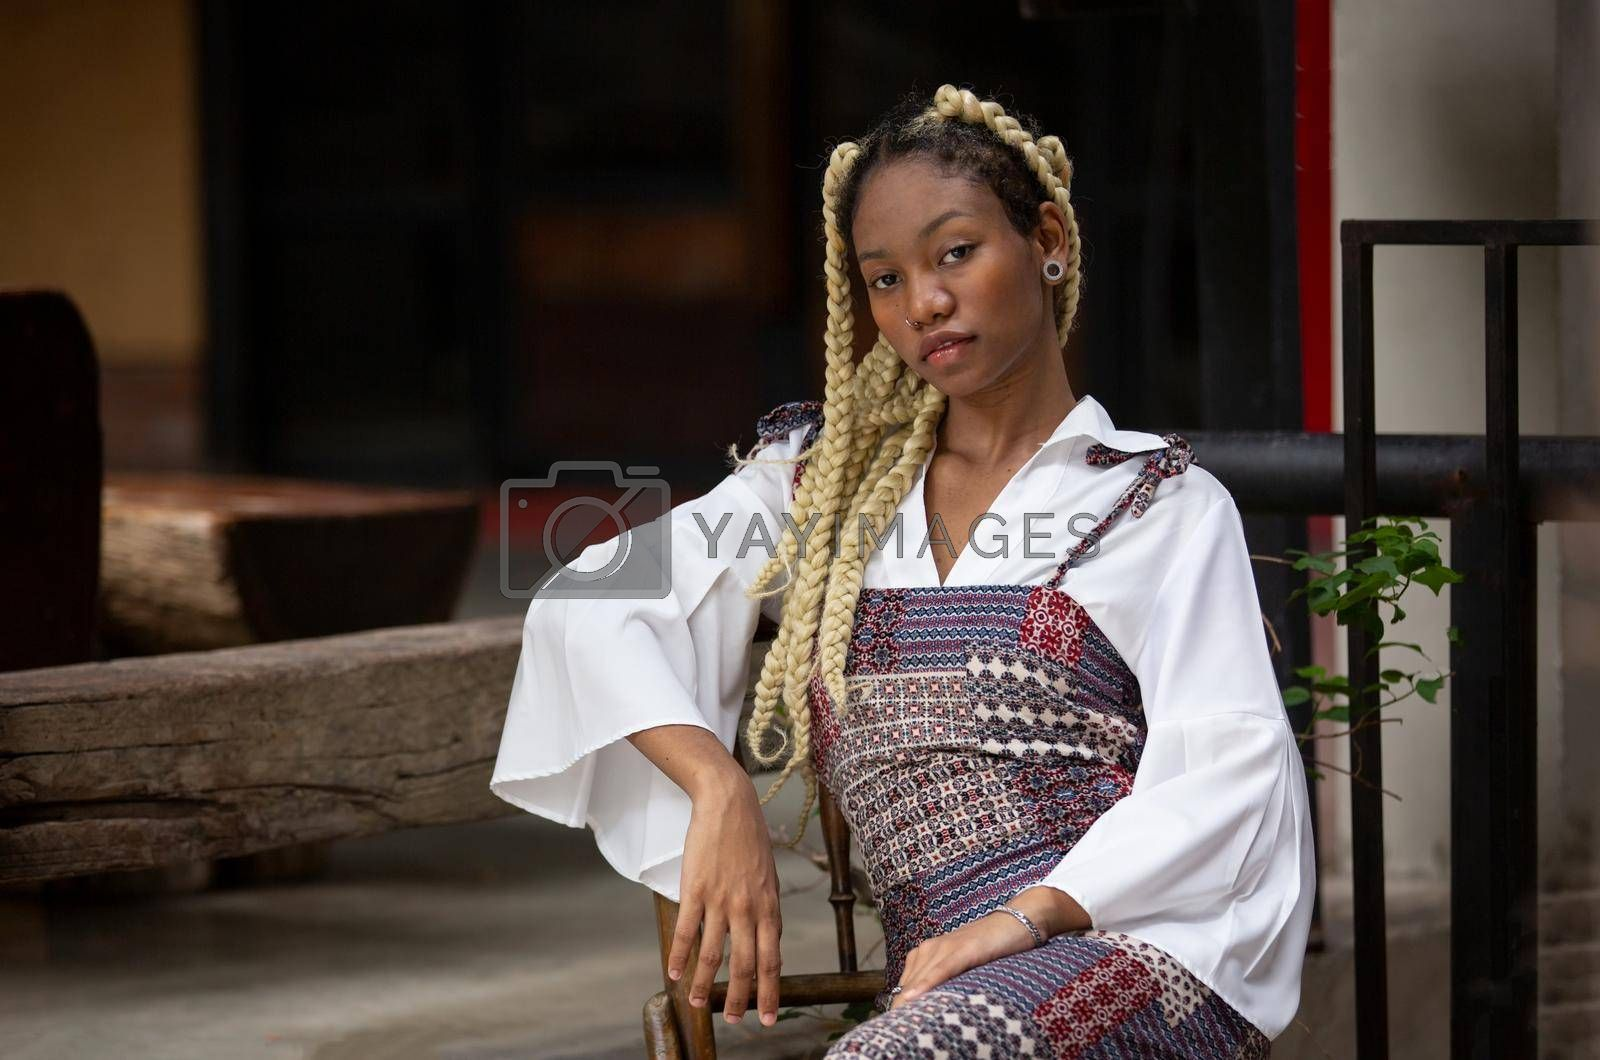 Outdoor Portrait Of African American Young Woman